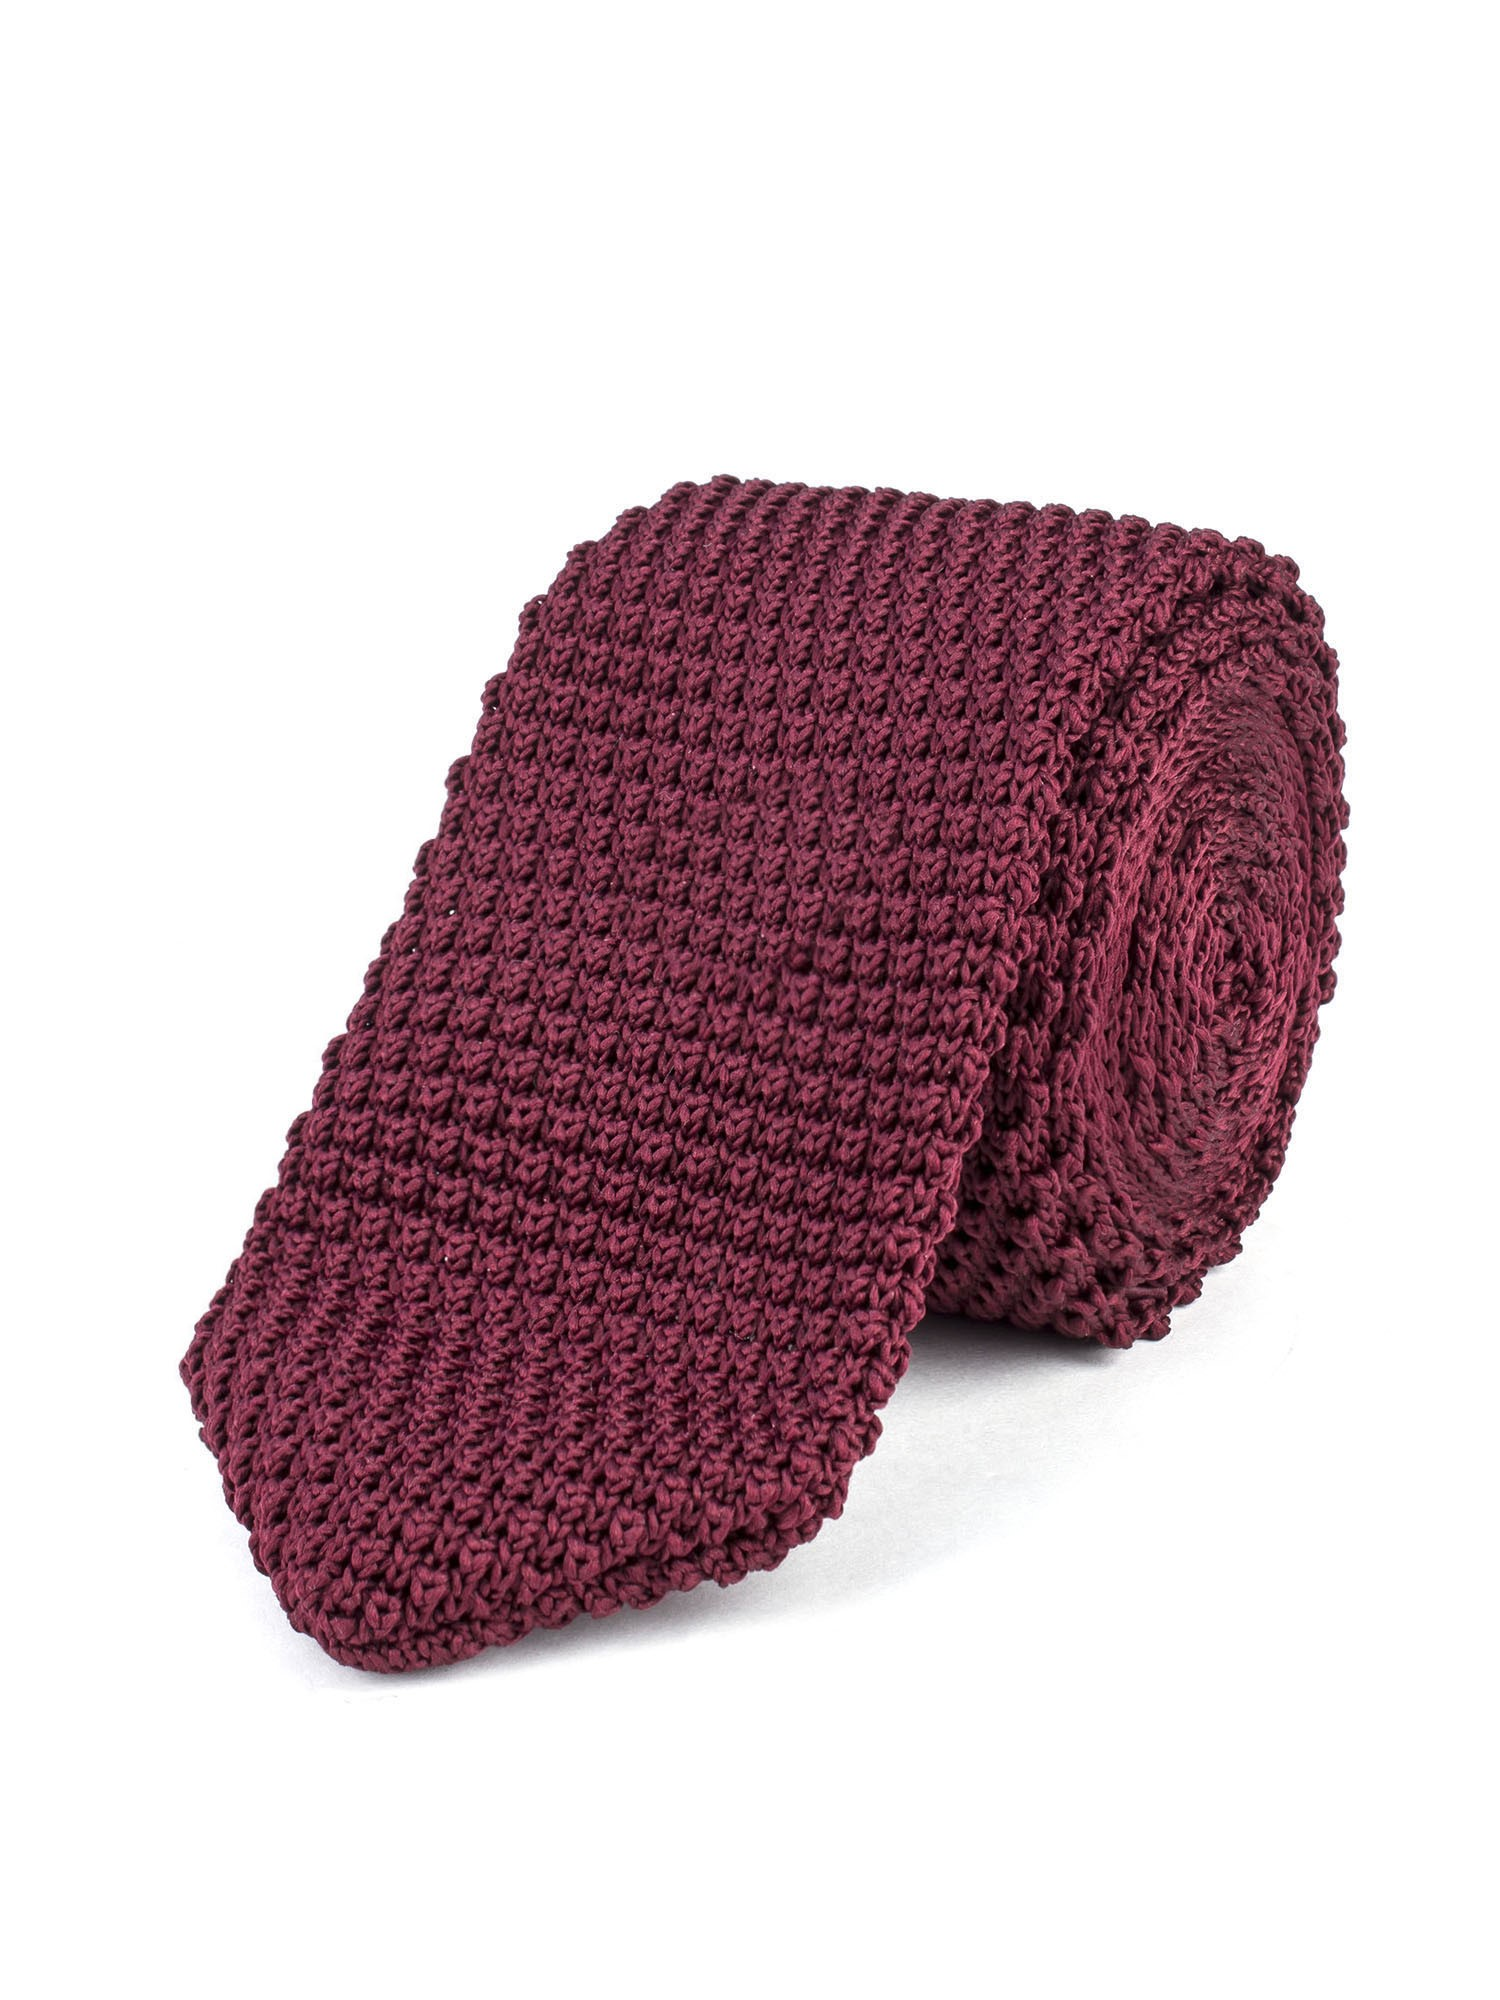 Ben Sherman Bordeaux Knitted Tie